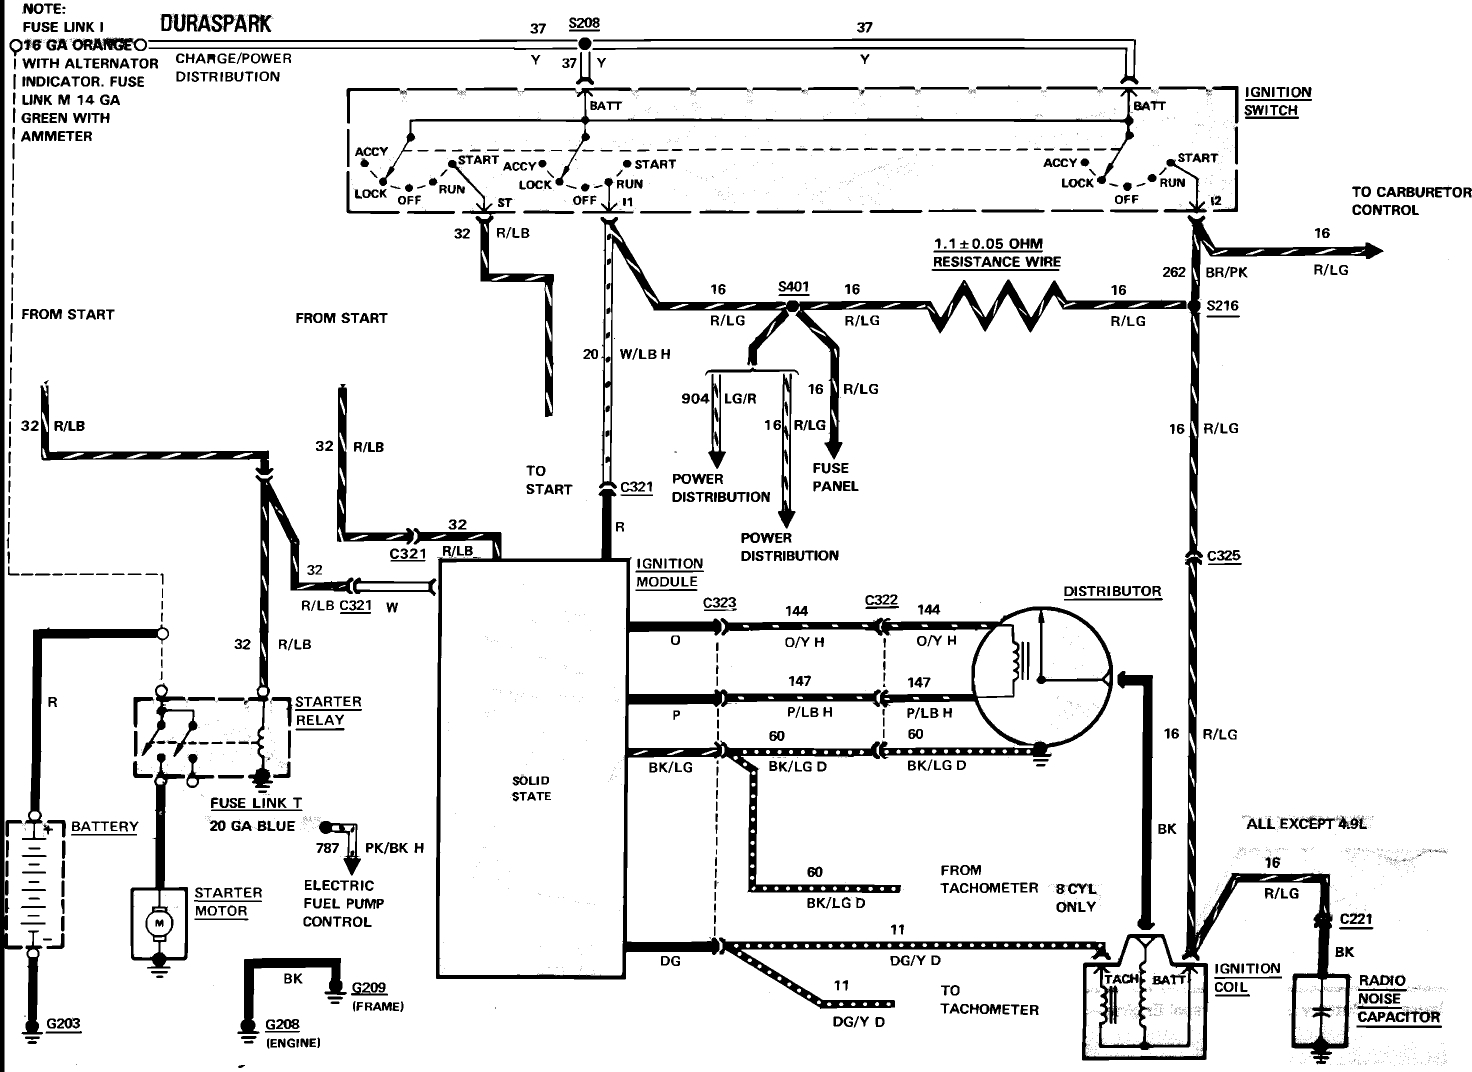 wiring diagram jetta a4 2002